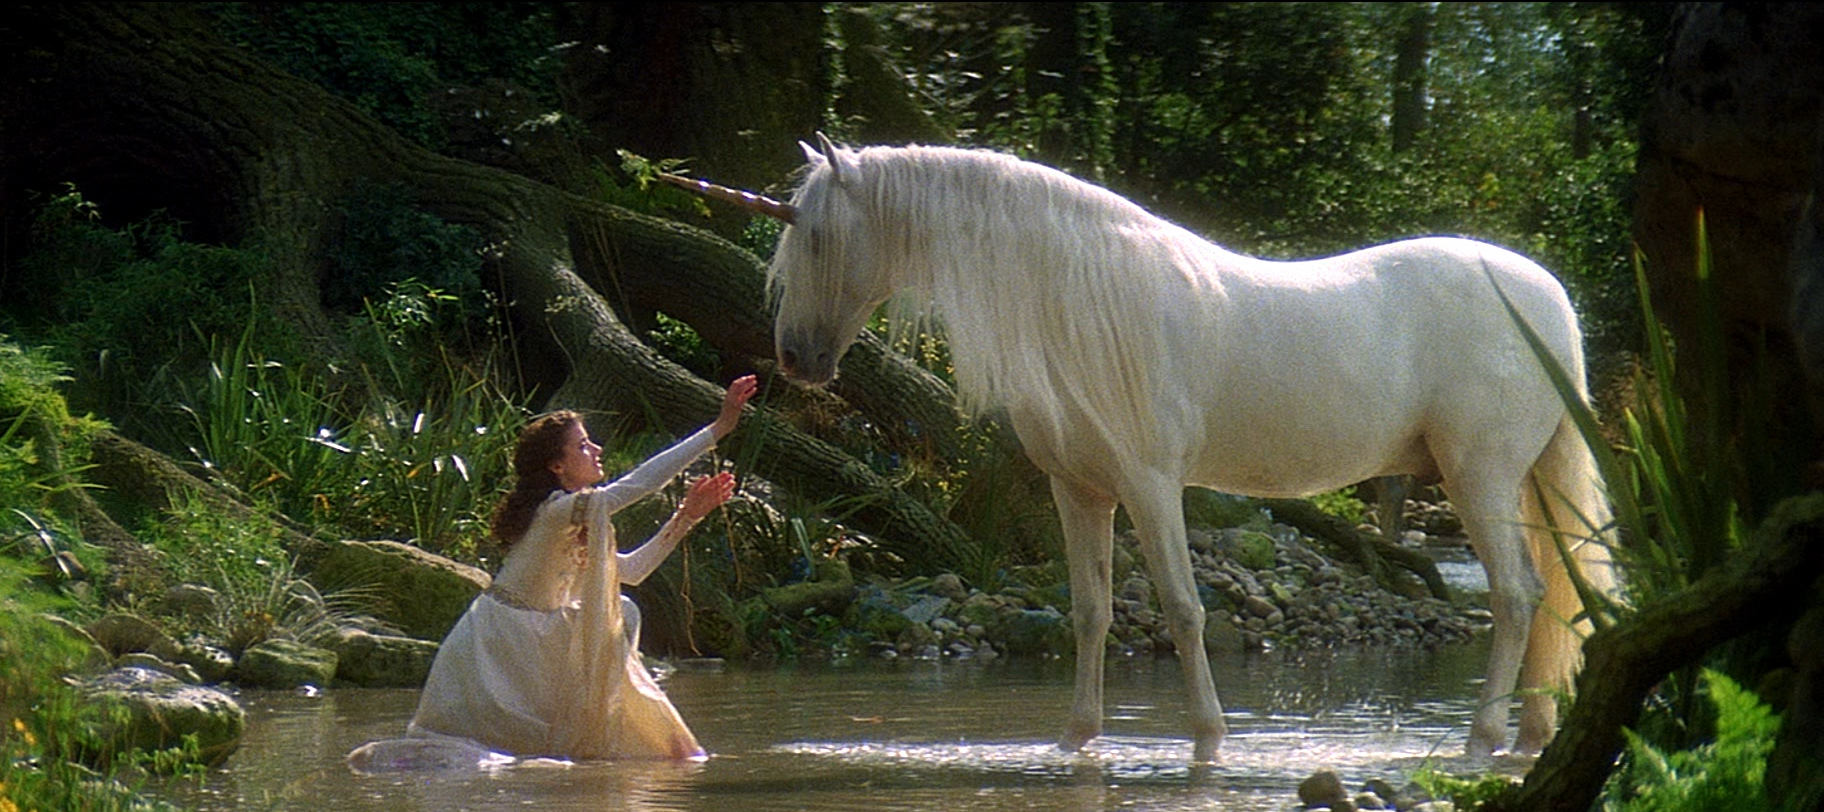 Mia Sara as Lili with the Unicorn Legend picture image